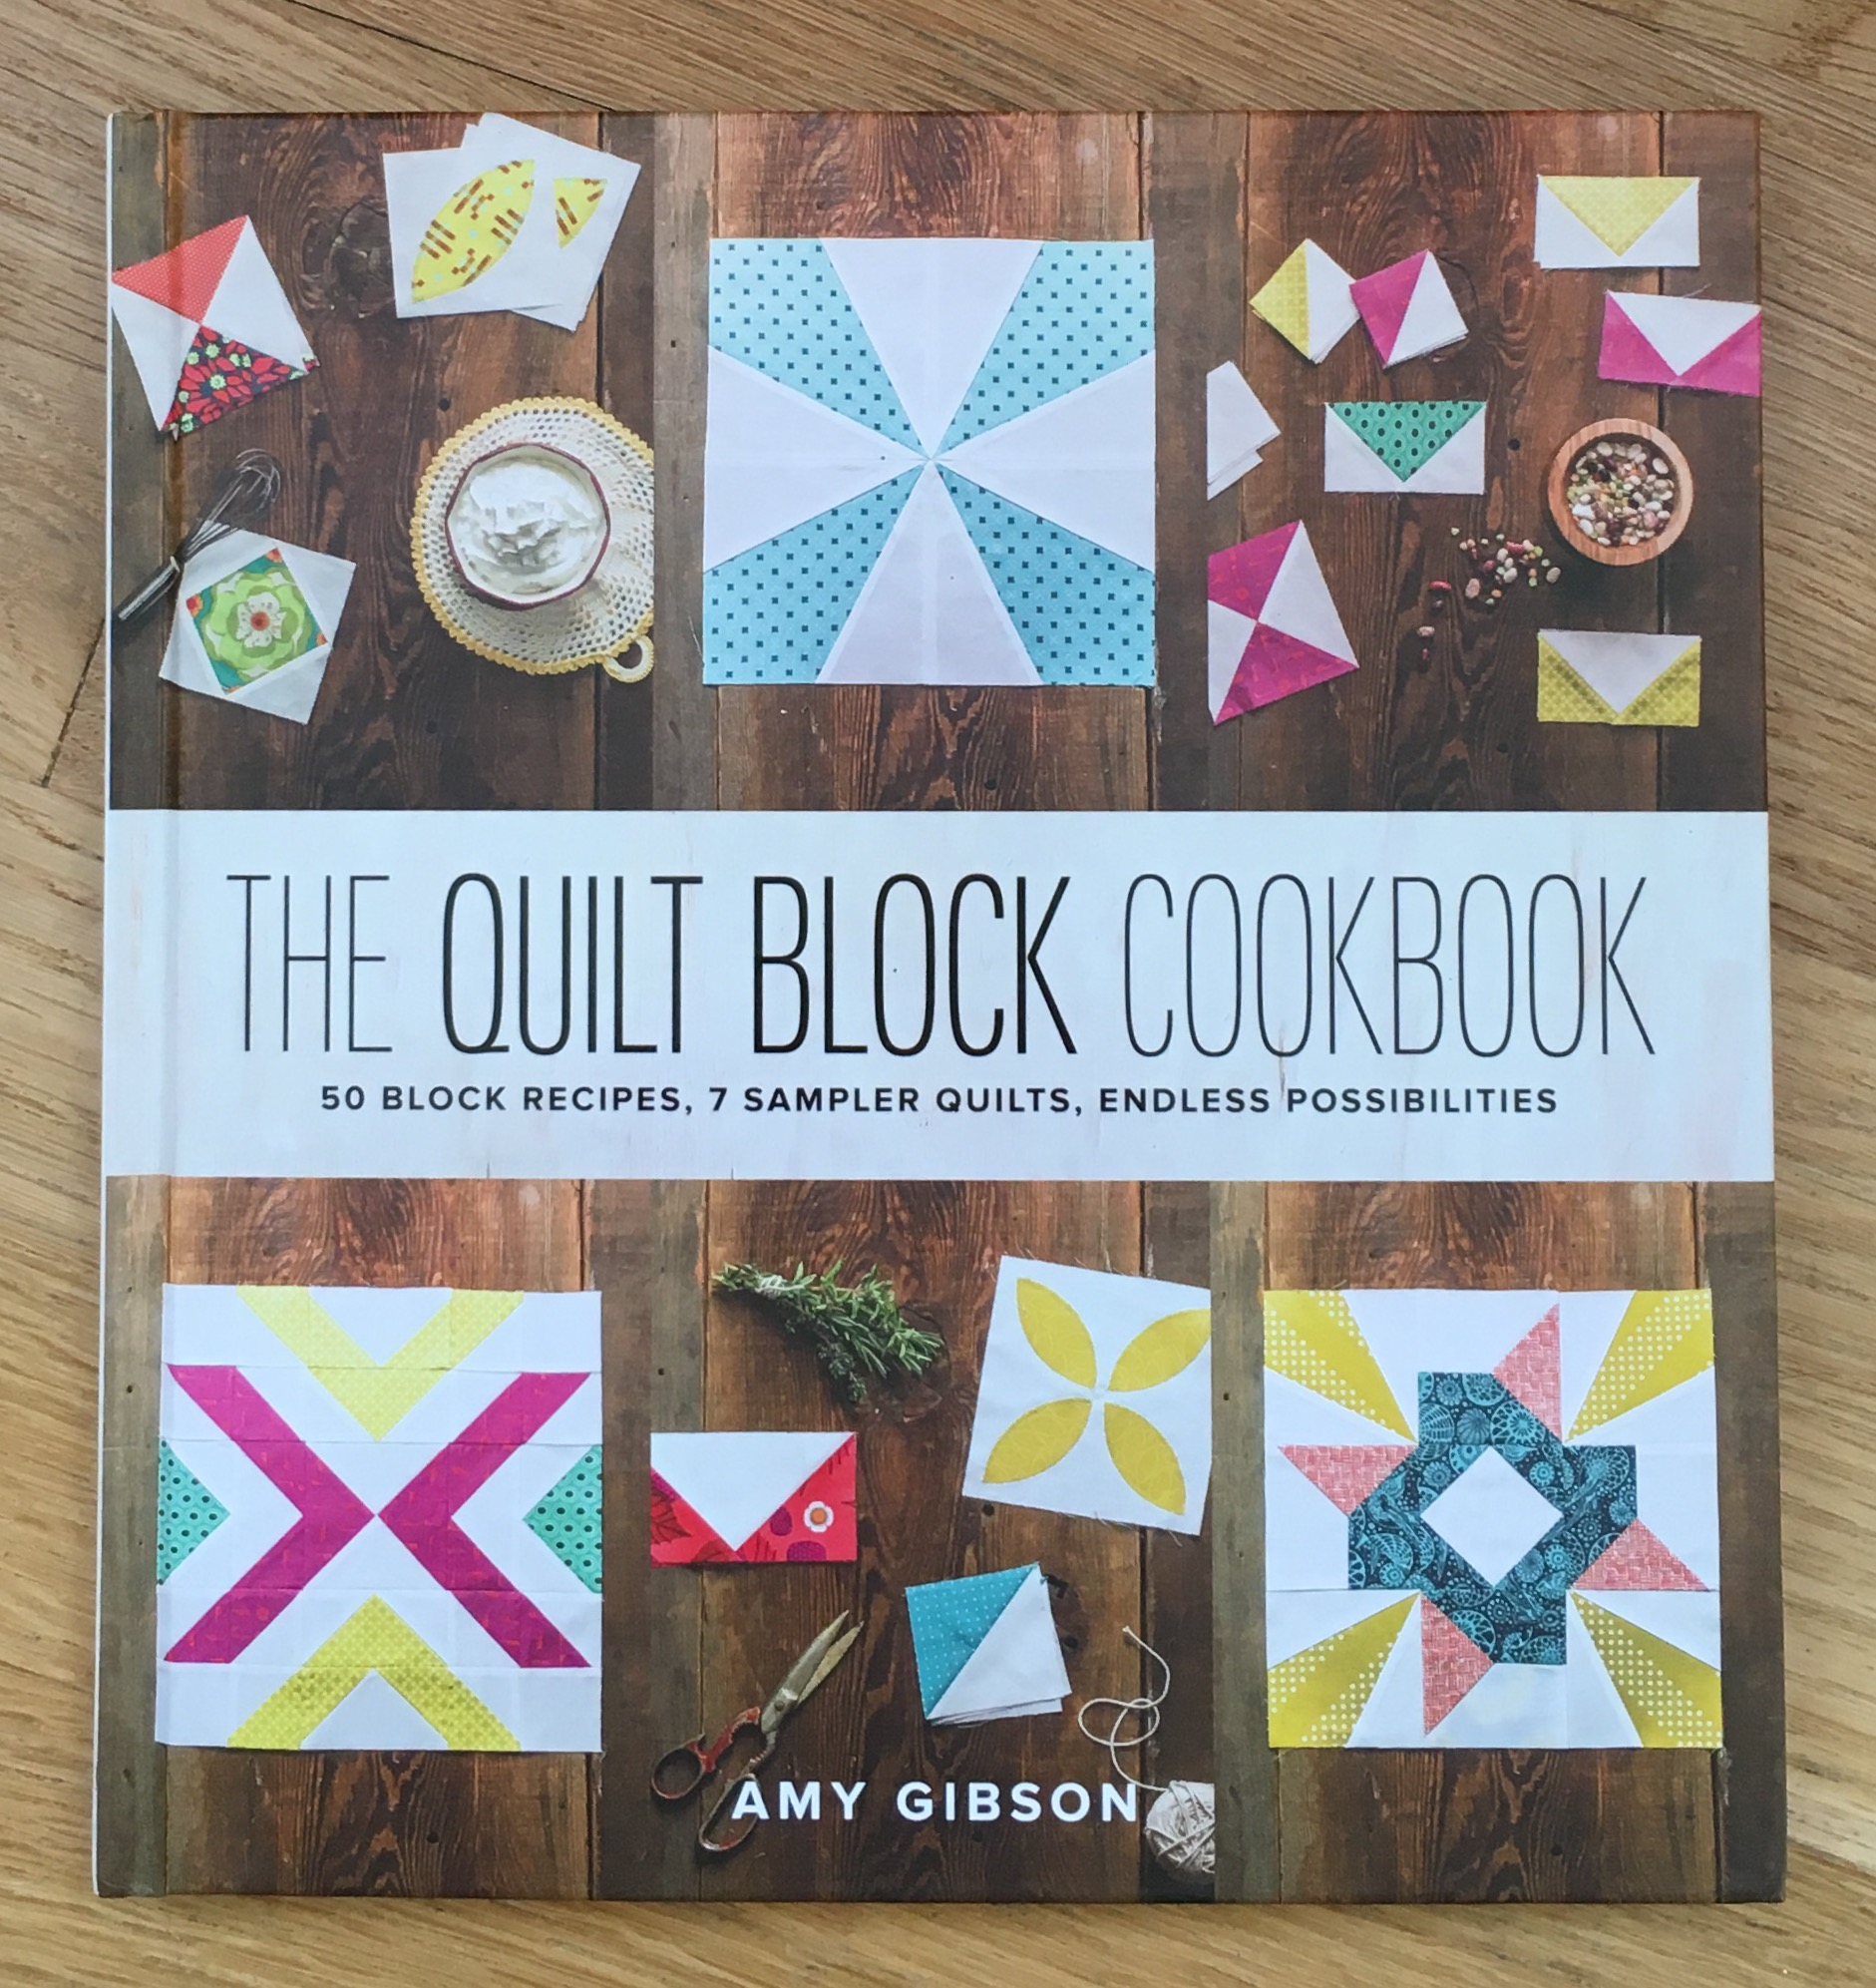 BookTheQuiltBlockCookbook.jpg